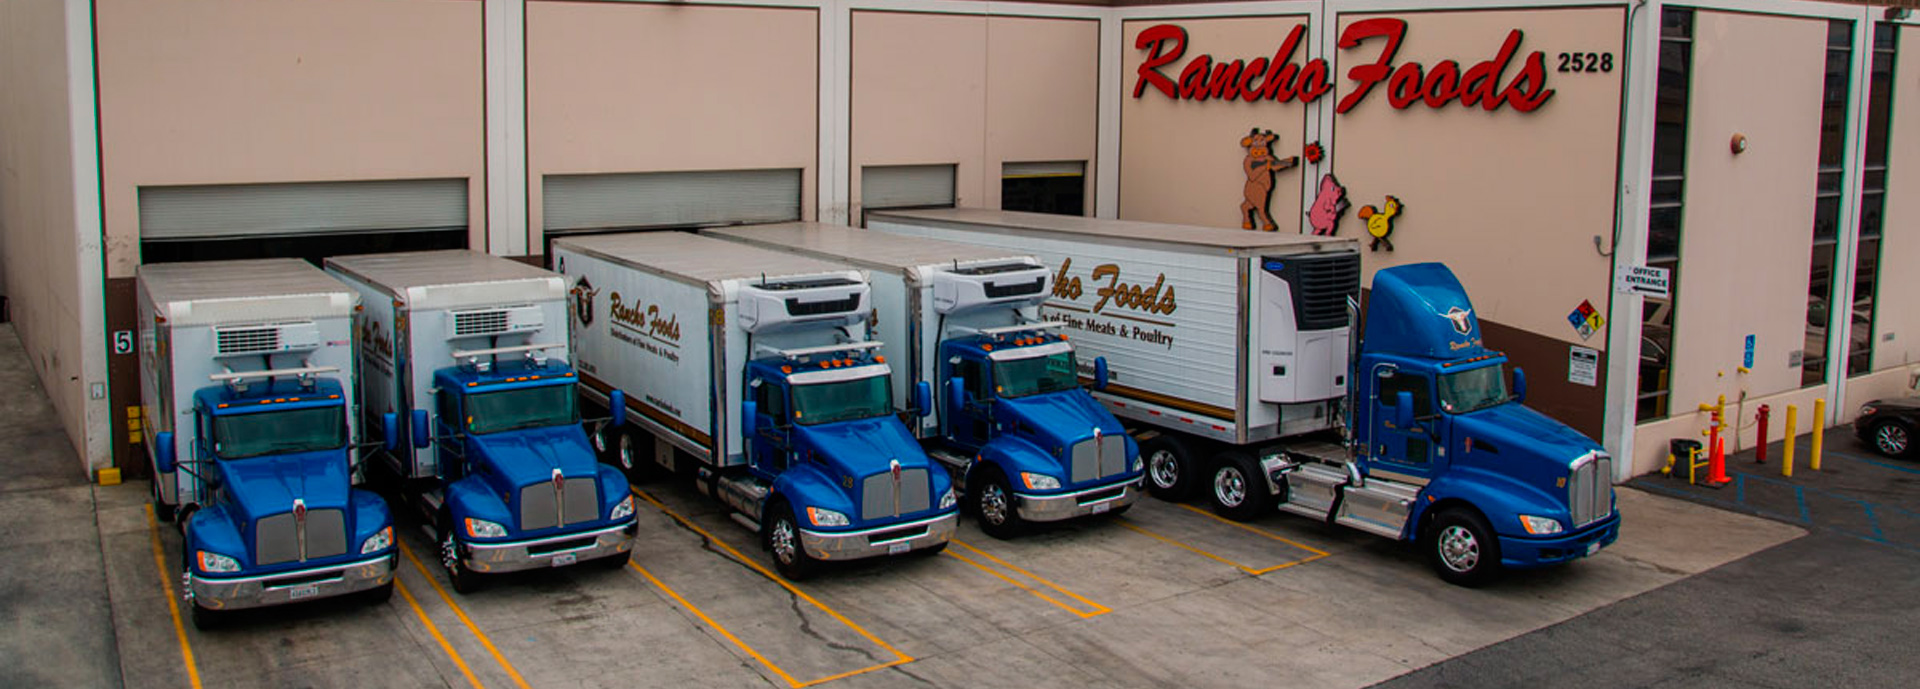 Rancho Foods Warehouse picture